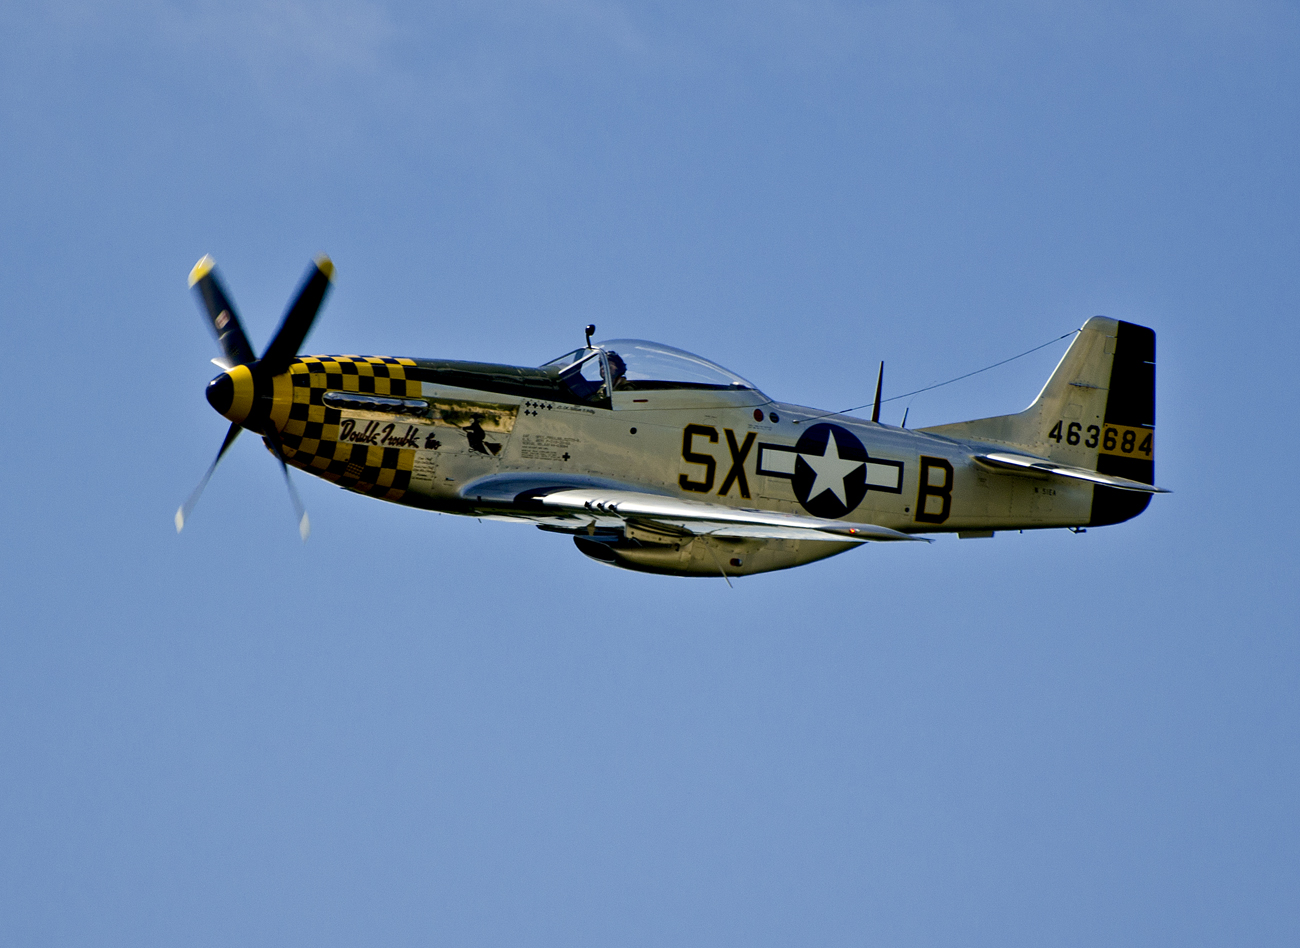 P51 Mustang Dogfight multiple Kills